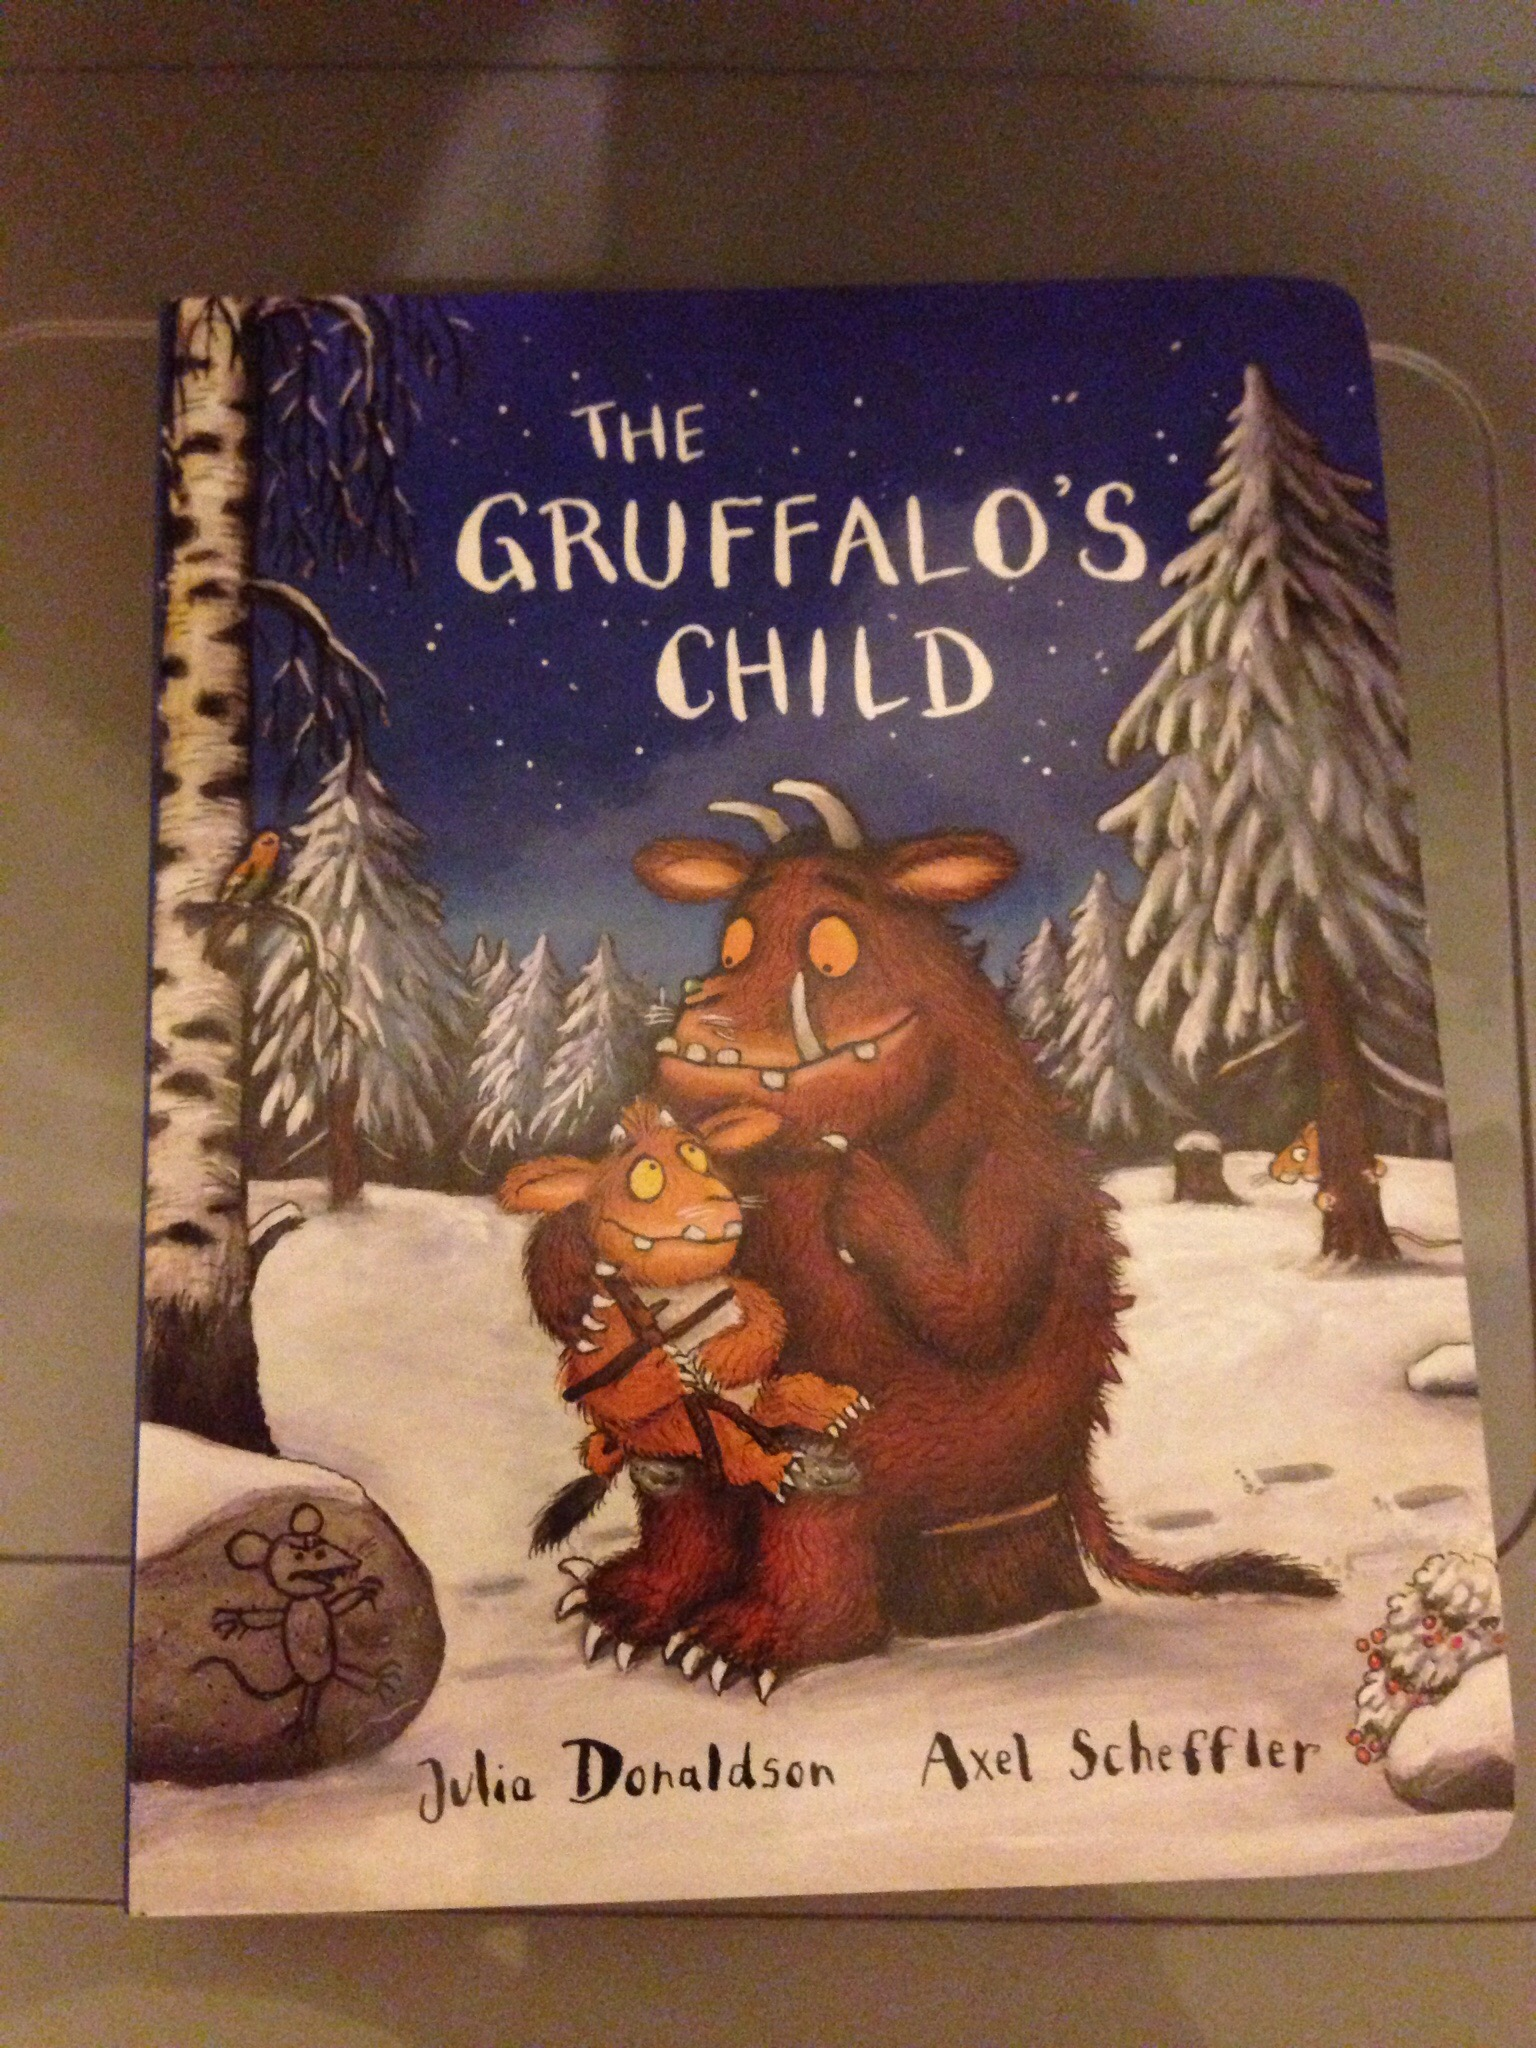 The Gruffalo's child book review